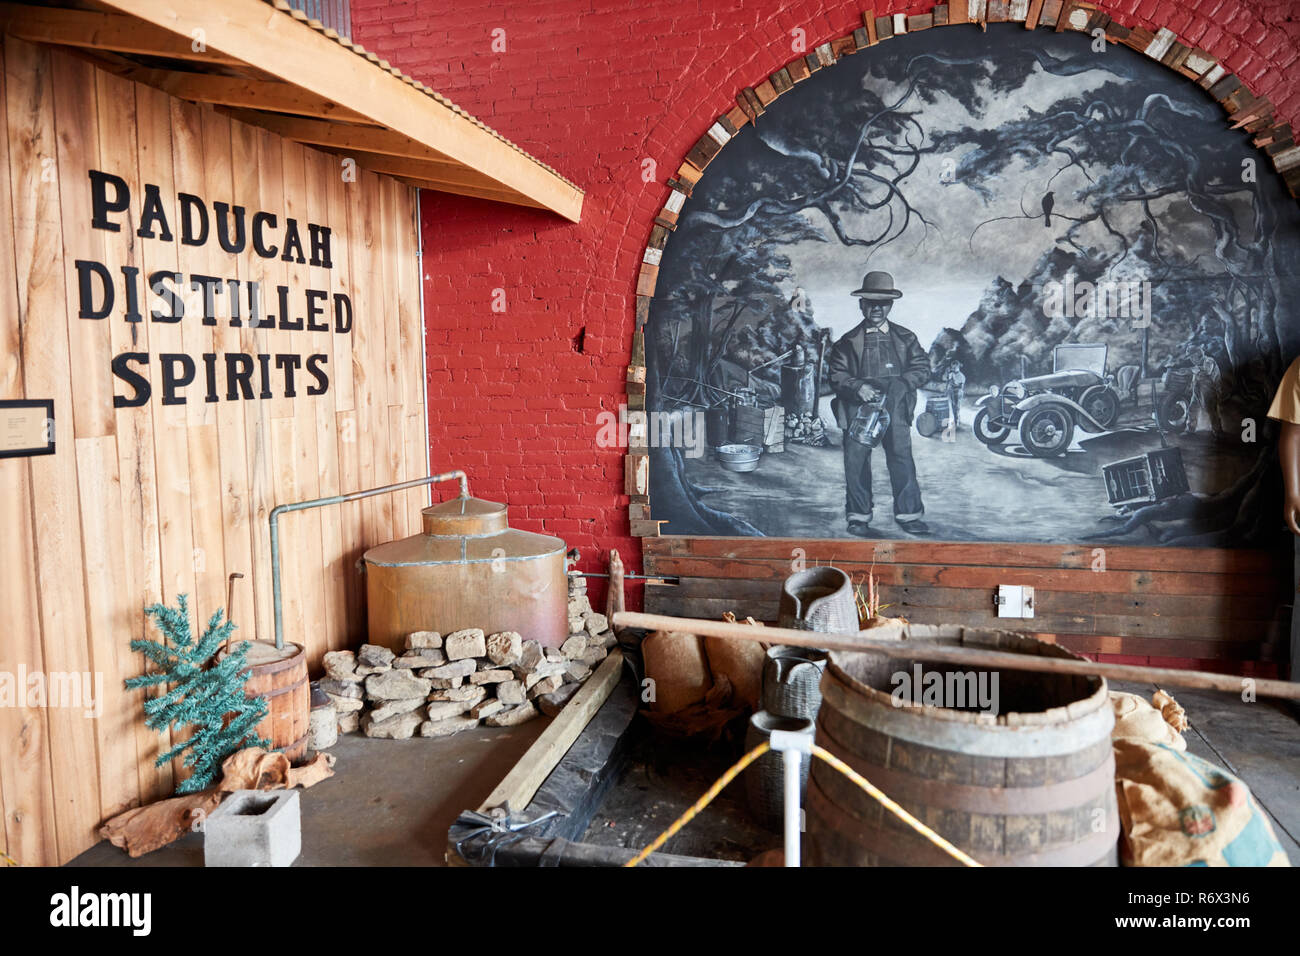 The Moonshine Company distillery in Paducah, Kentucky - Stock Image